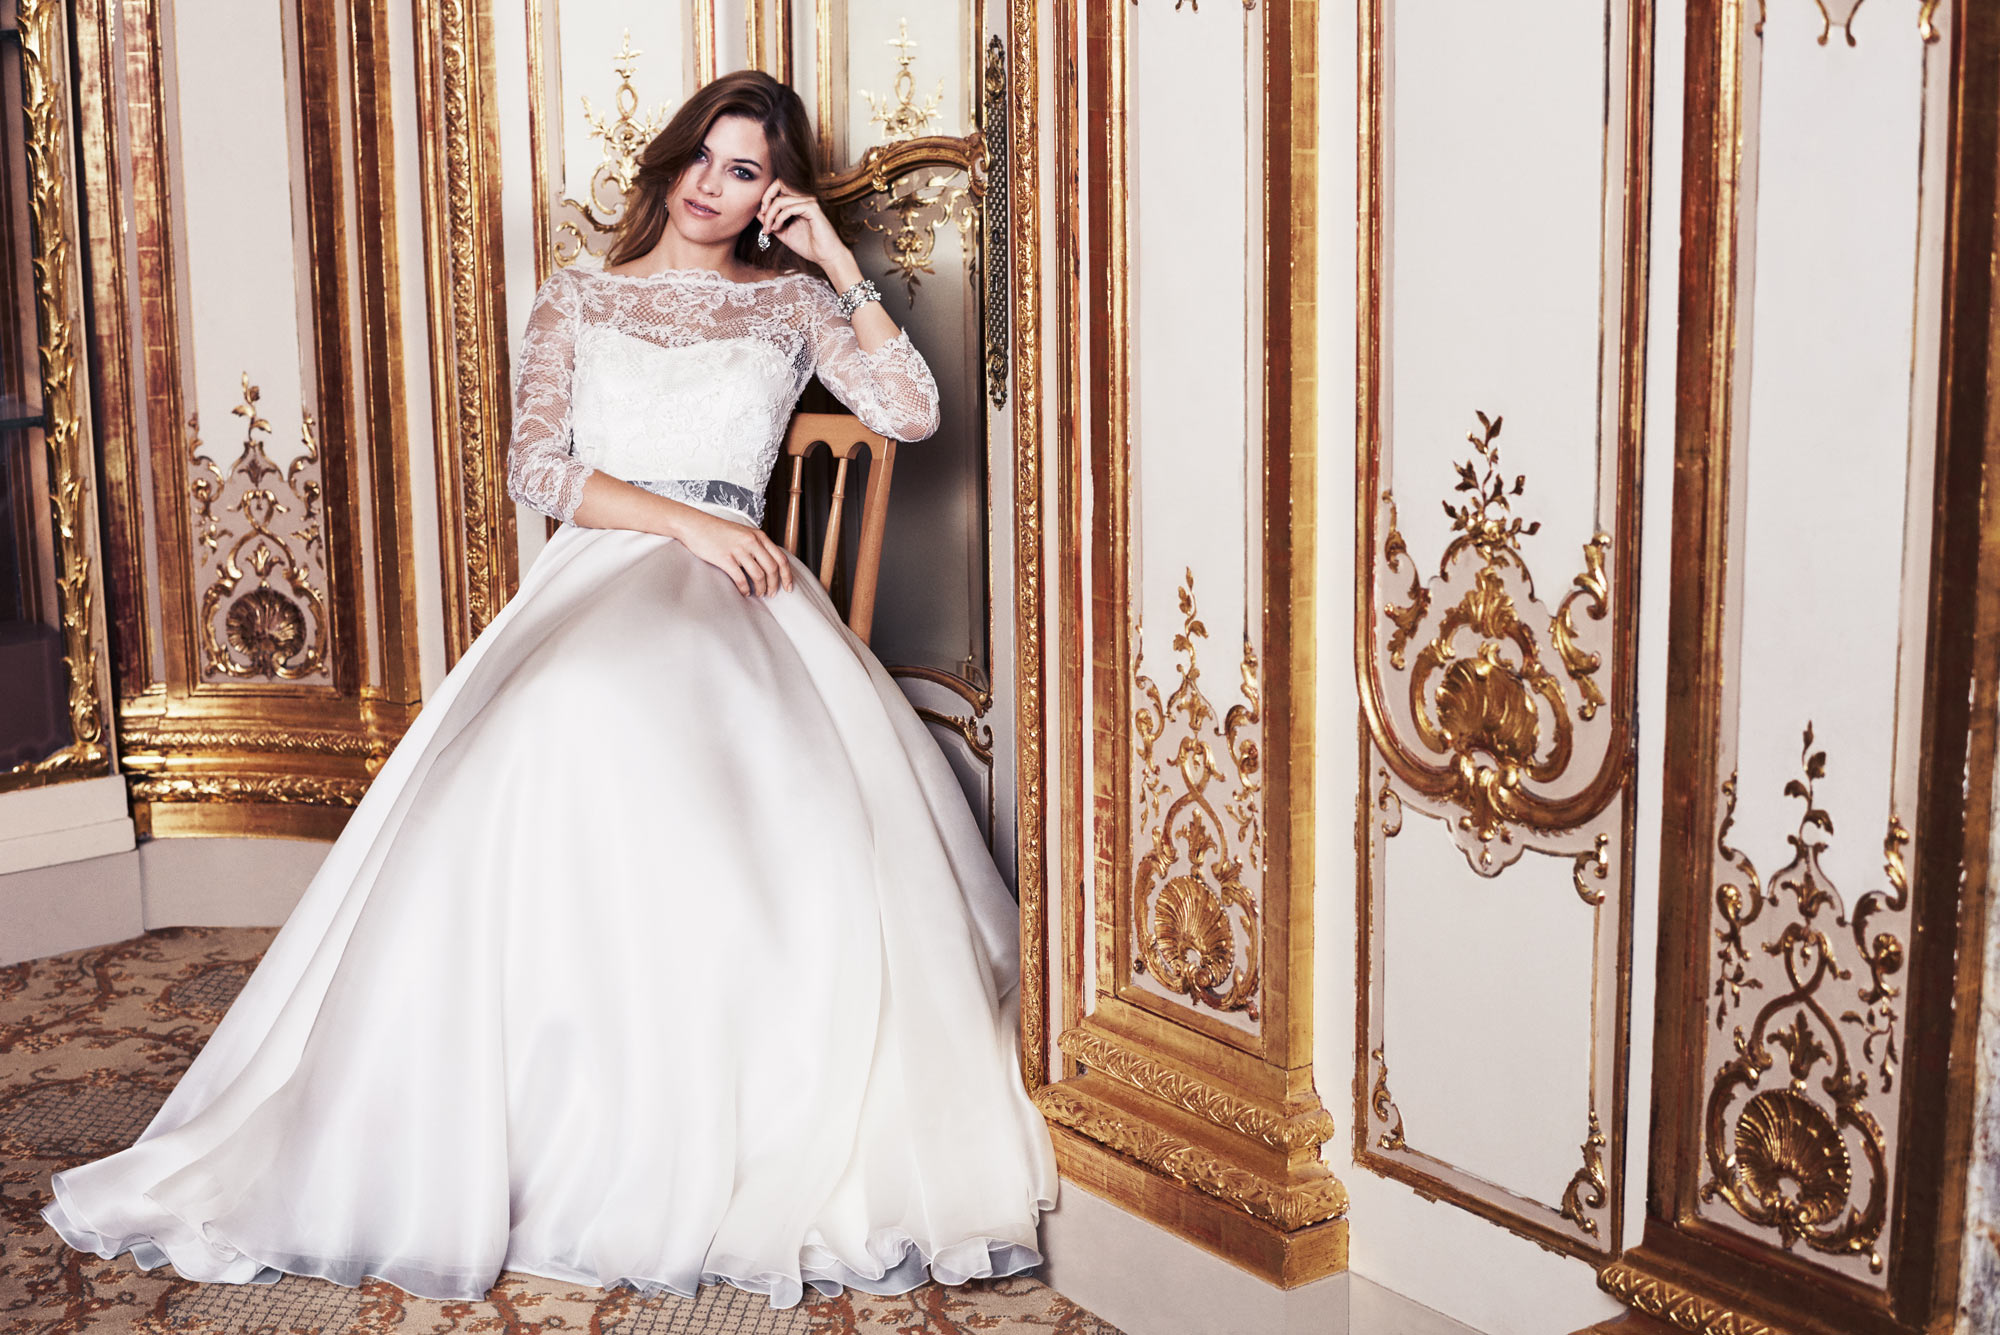 Bellisima designer wedding dresses by Caroline Castigliano